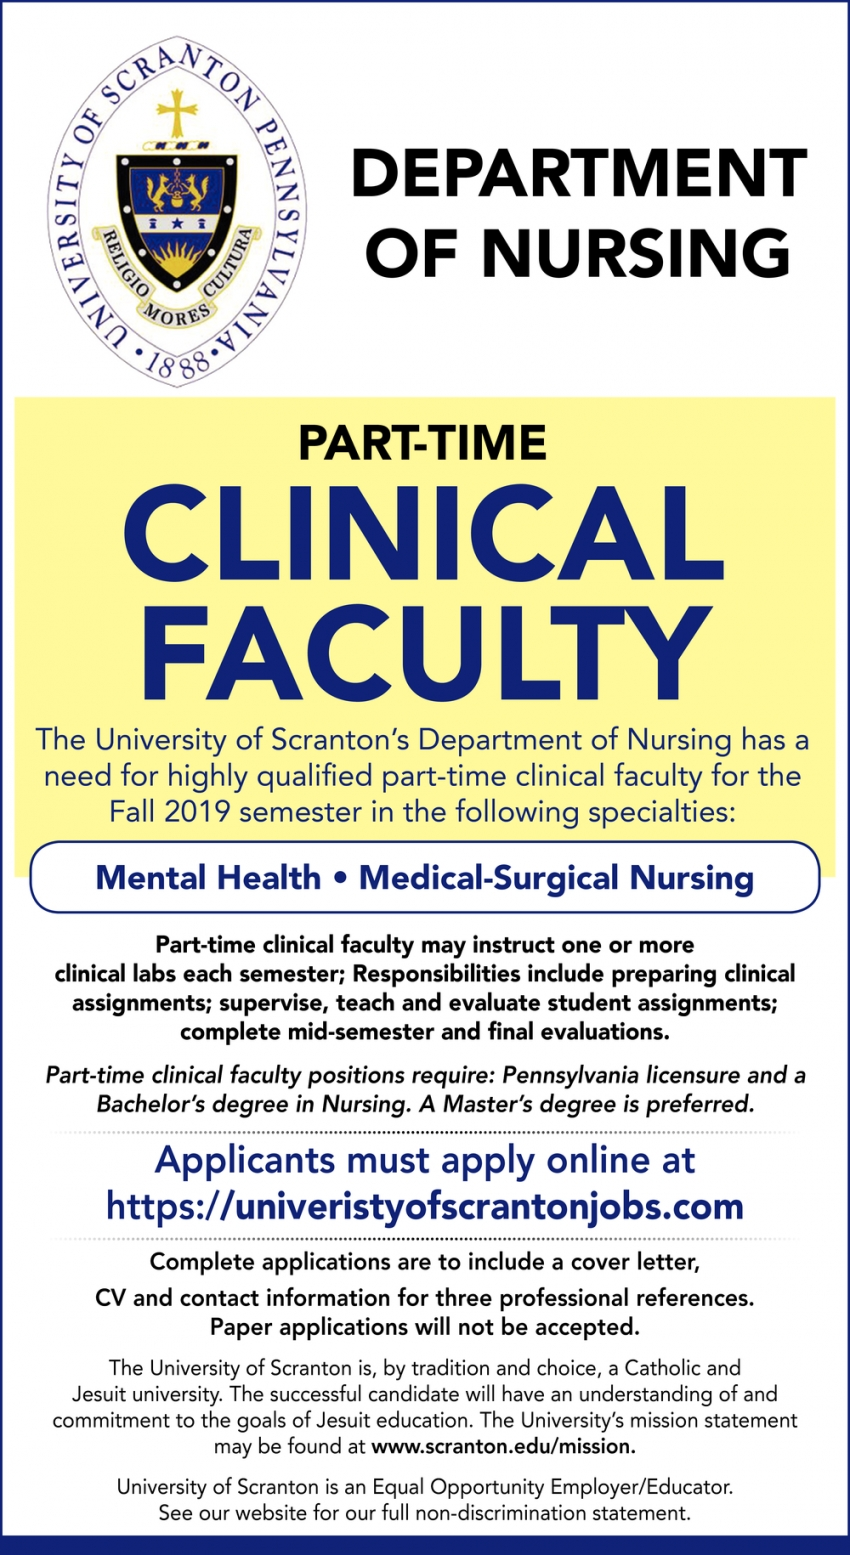 Mental Health, Medical Surgical Nursing